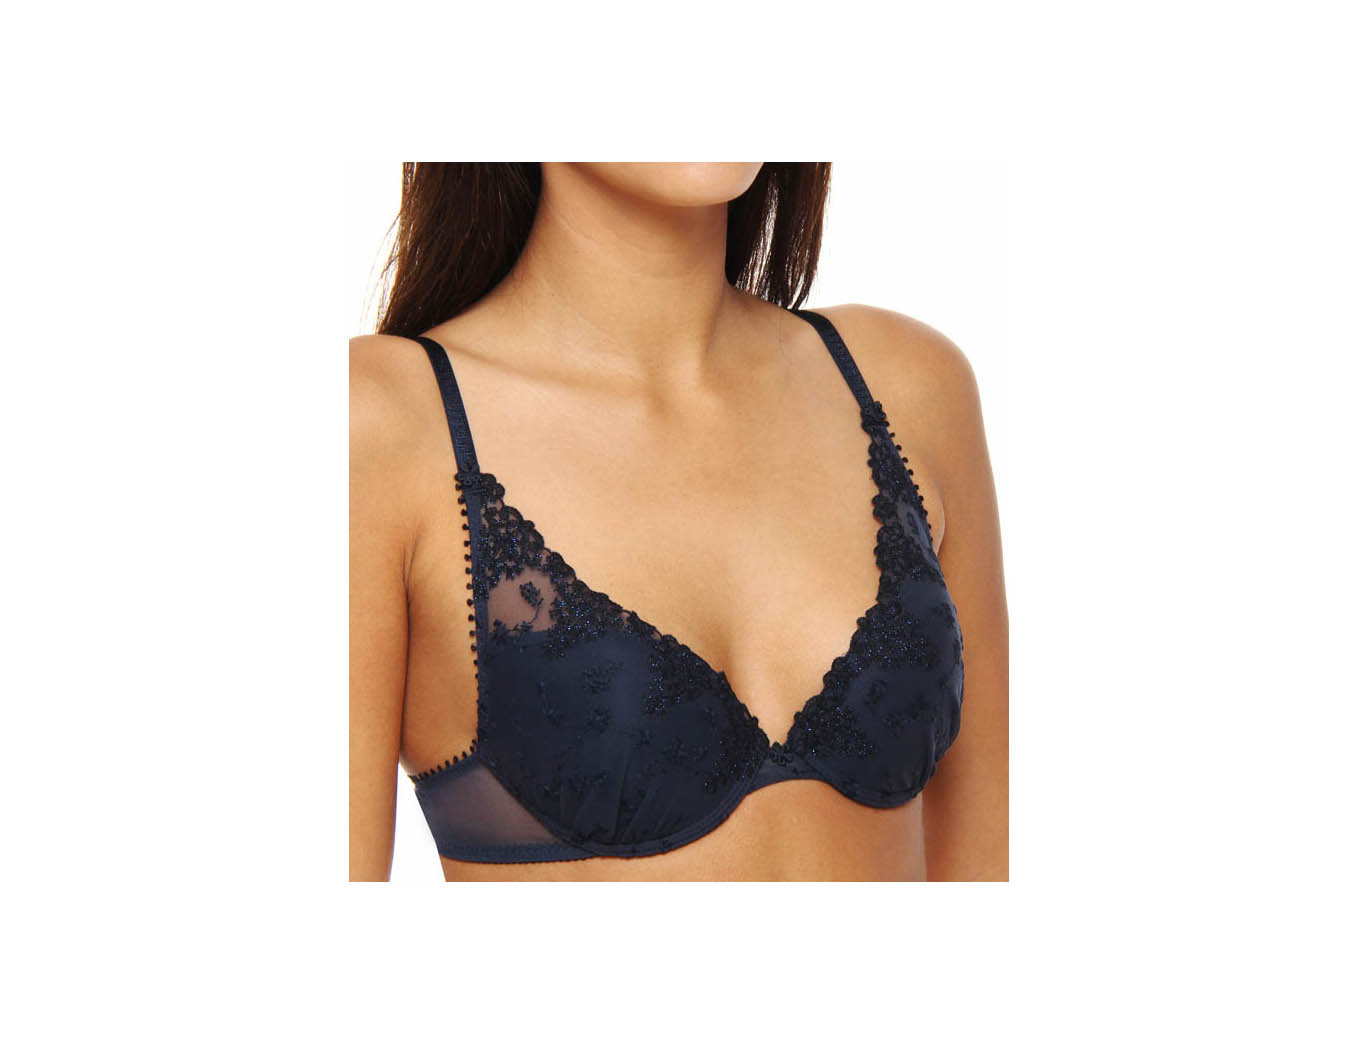 Passionata by Chantelle White Nights Push-Up Bra